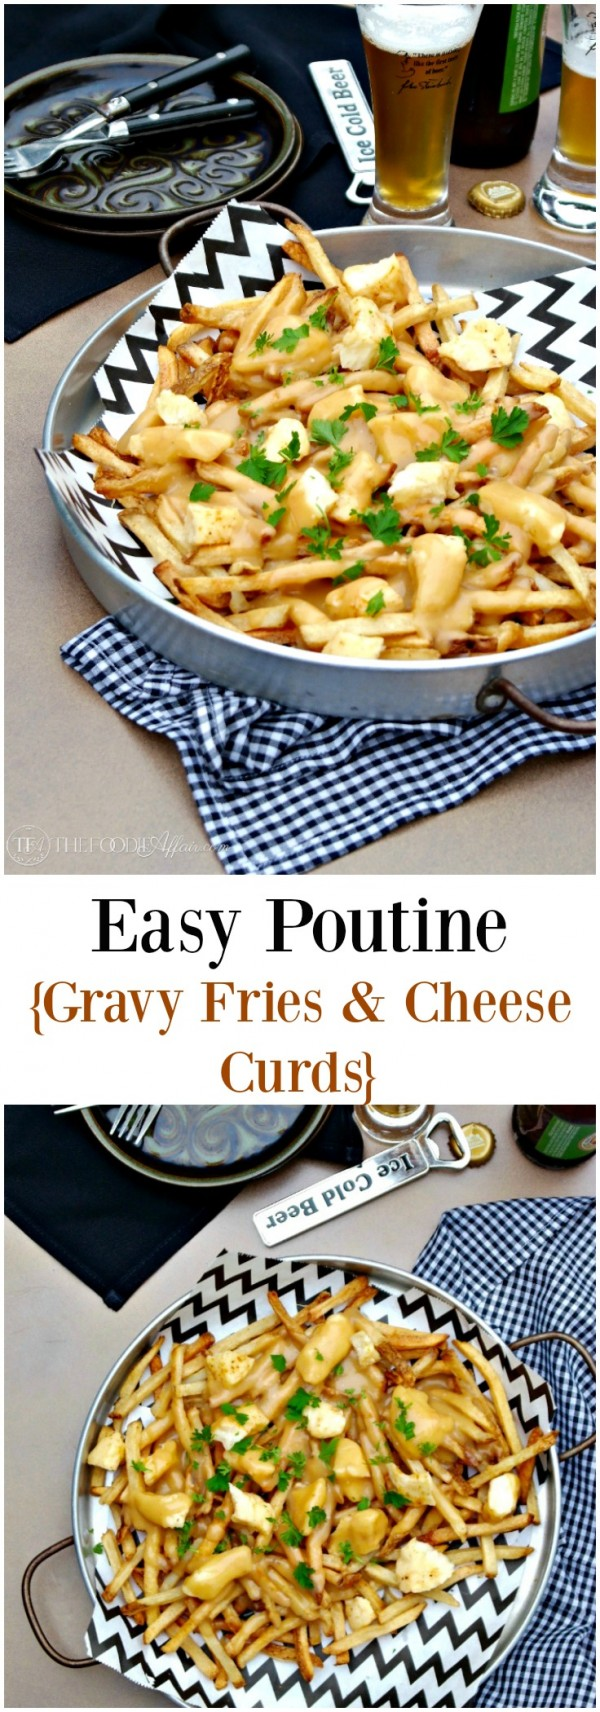 Easy Poutine Gravy Fries by The Foodie Affair | Epicurious Community ...